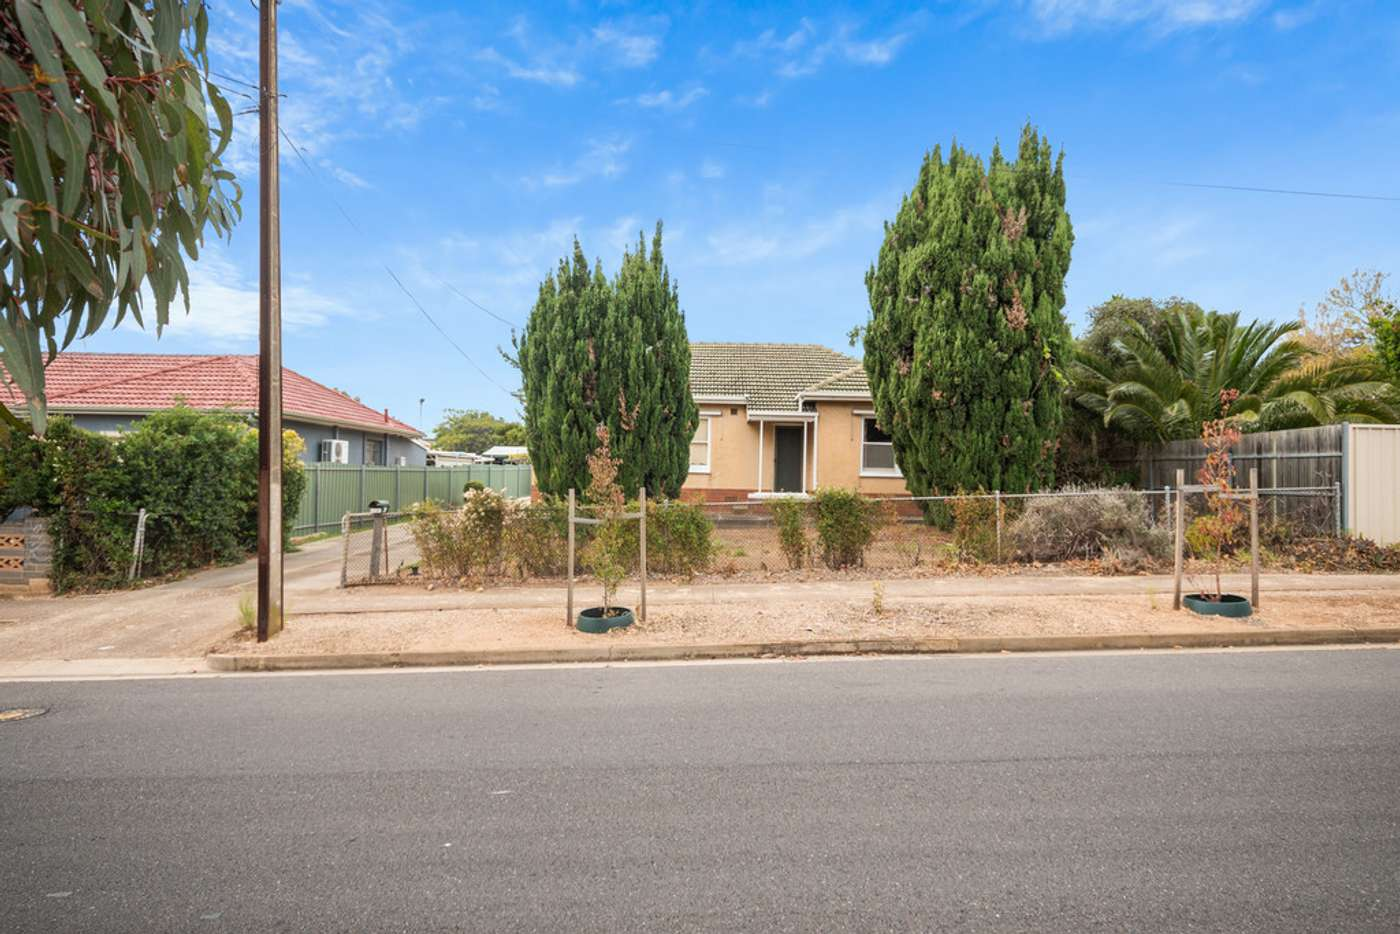 Fifth view of Homely house listing, 31 Davenport Terrace, Seaview Downs SA 5049